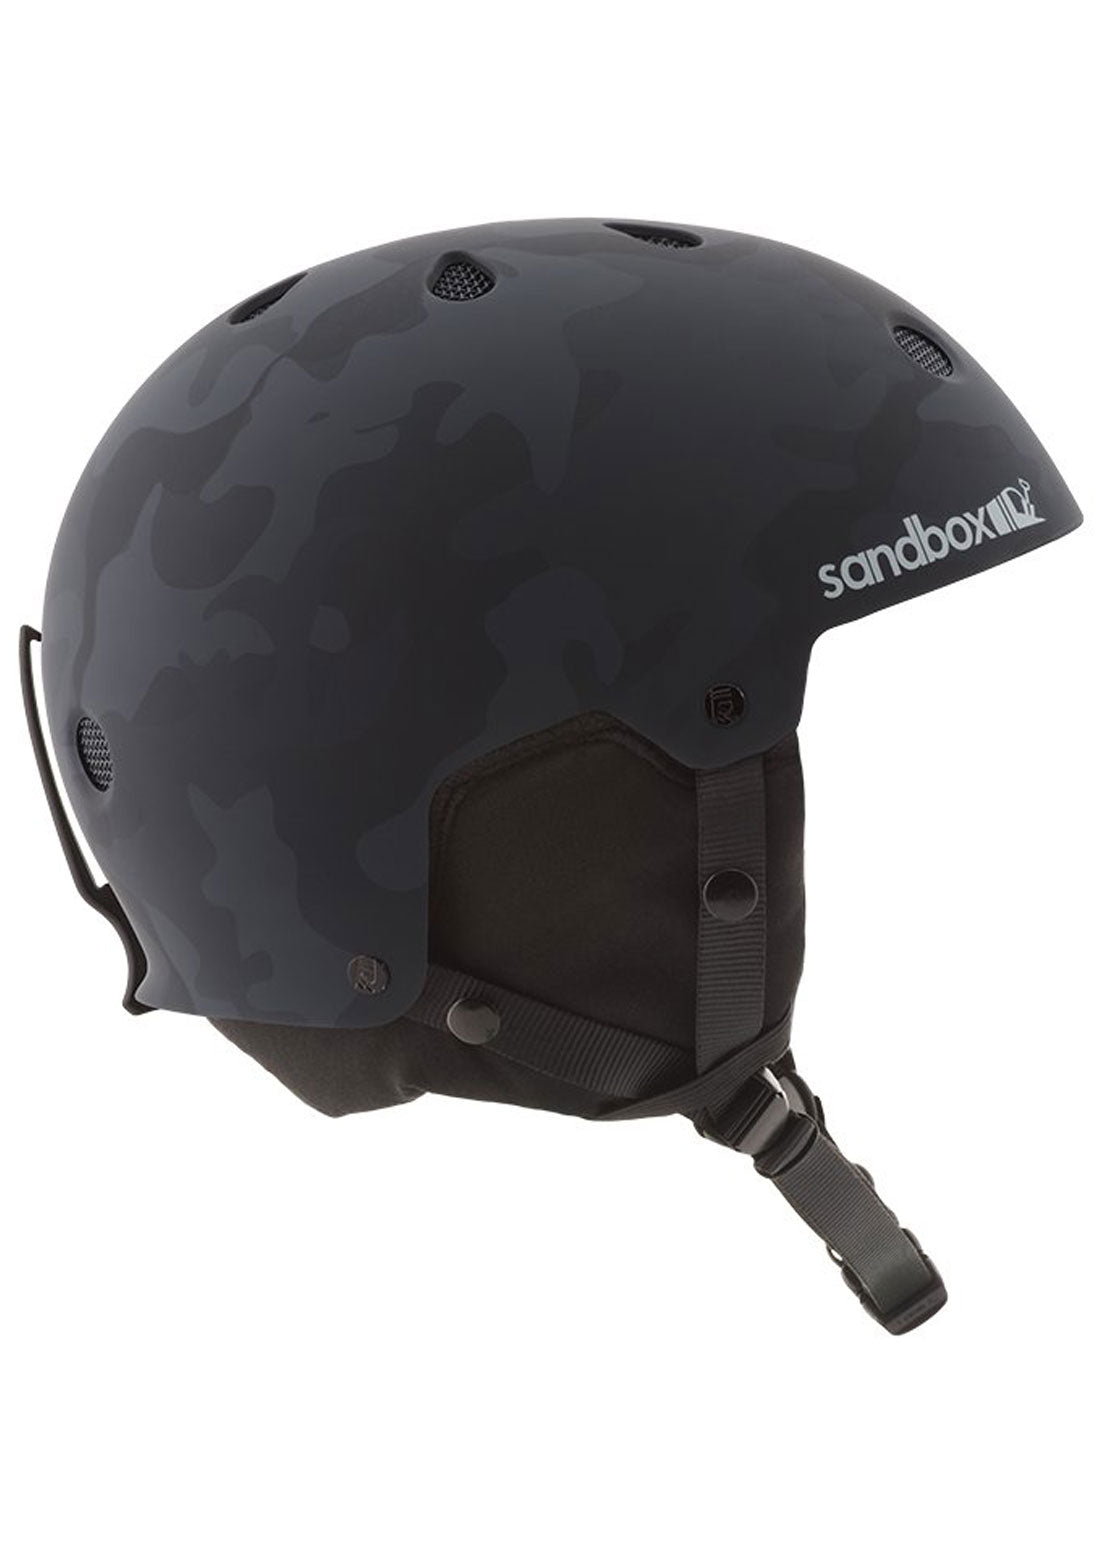 Sandbox Legend Winter Helmet Black Camo Matte